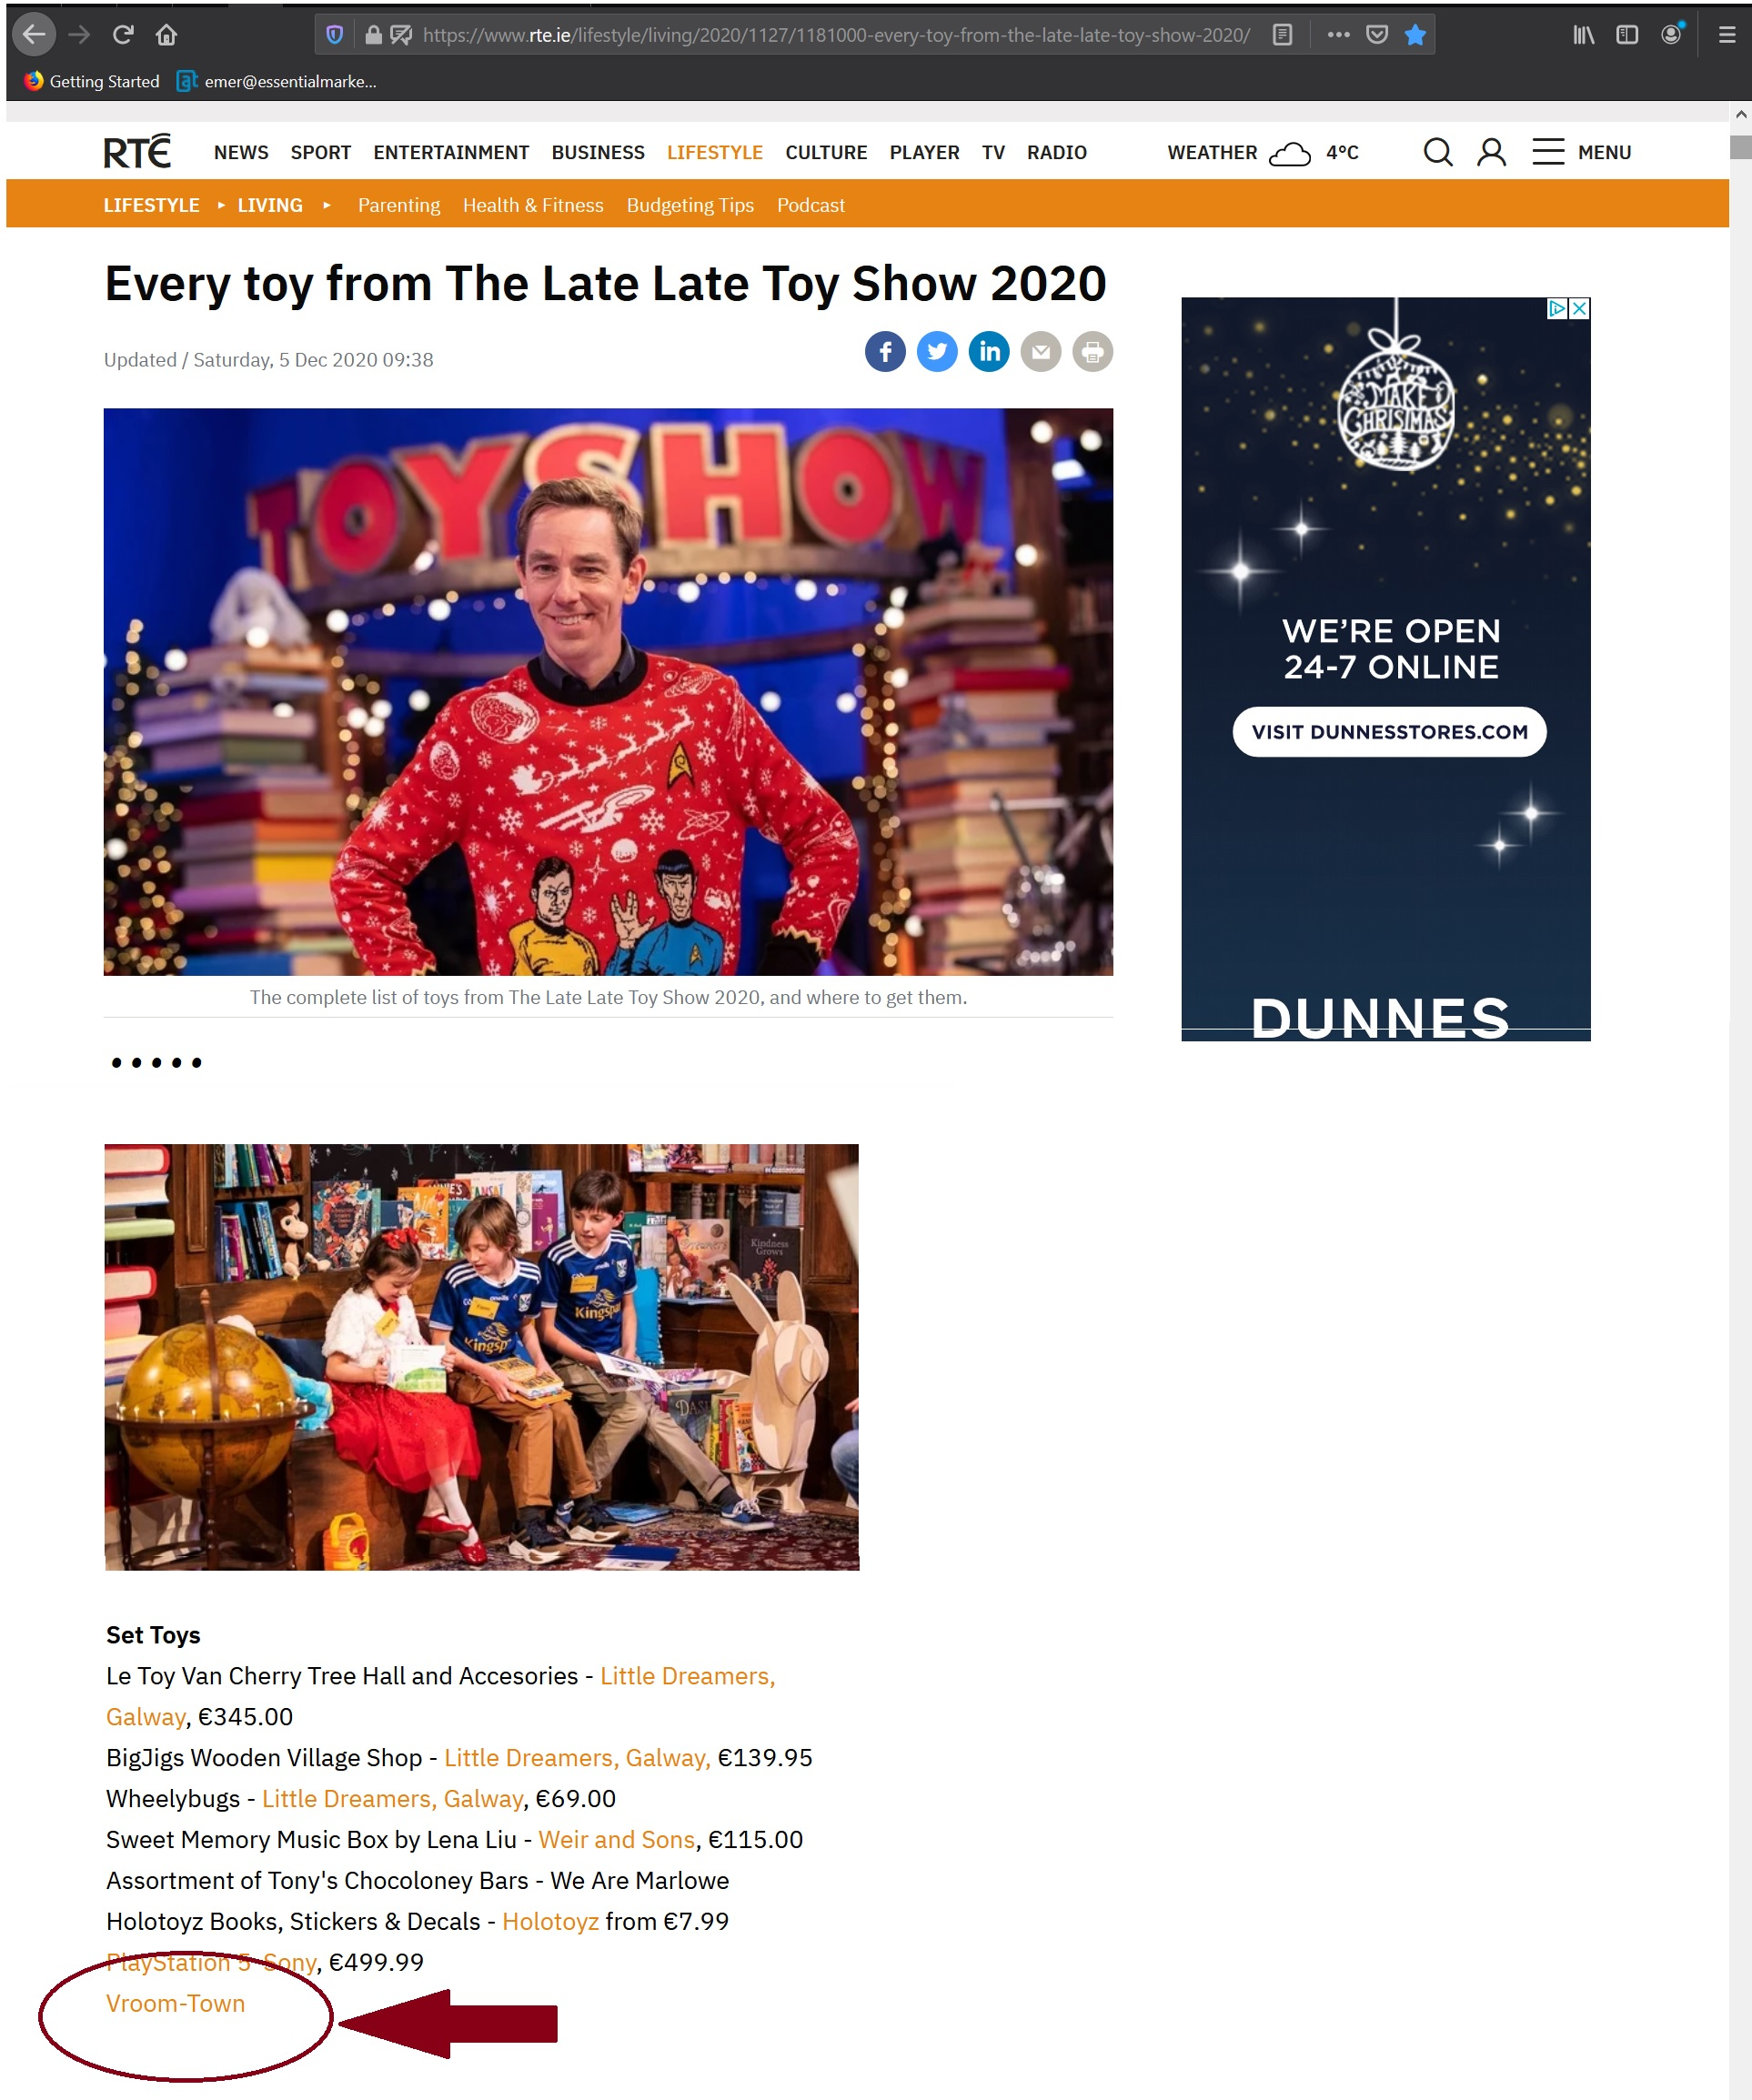 Vroom-Town on Late Late Toy Show 2020 Page